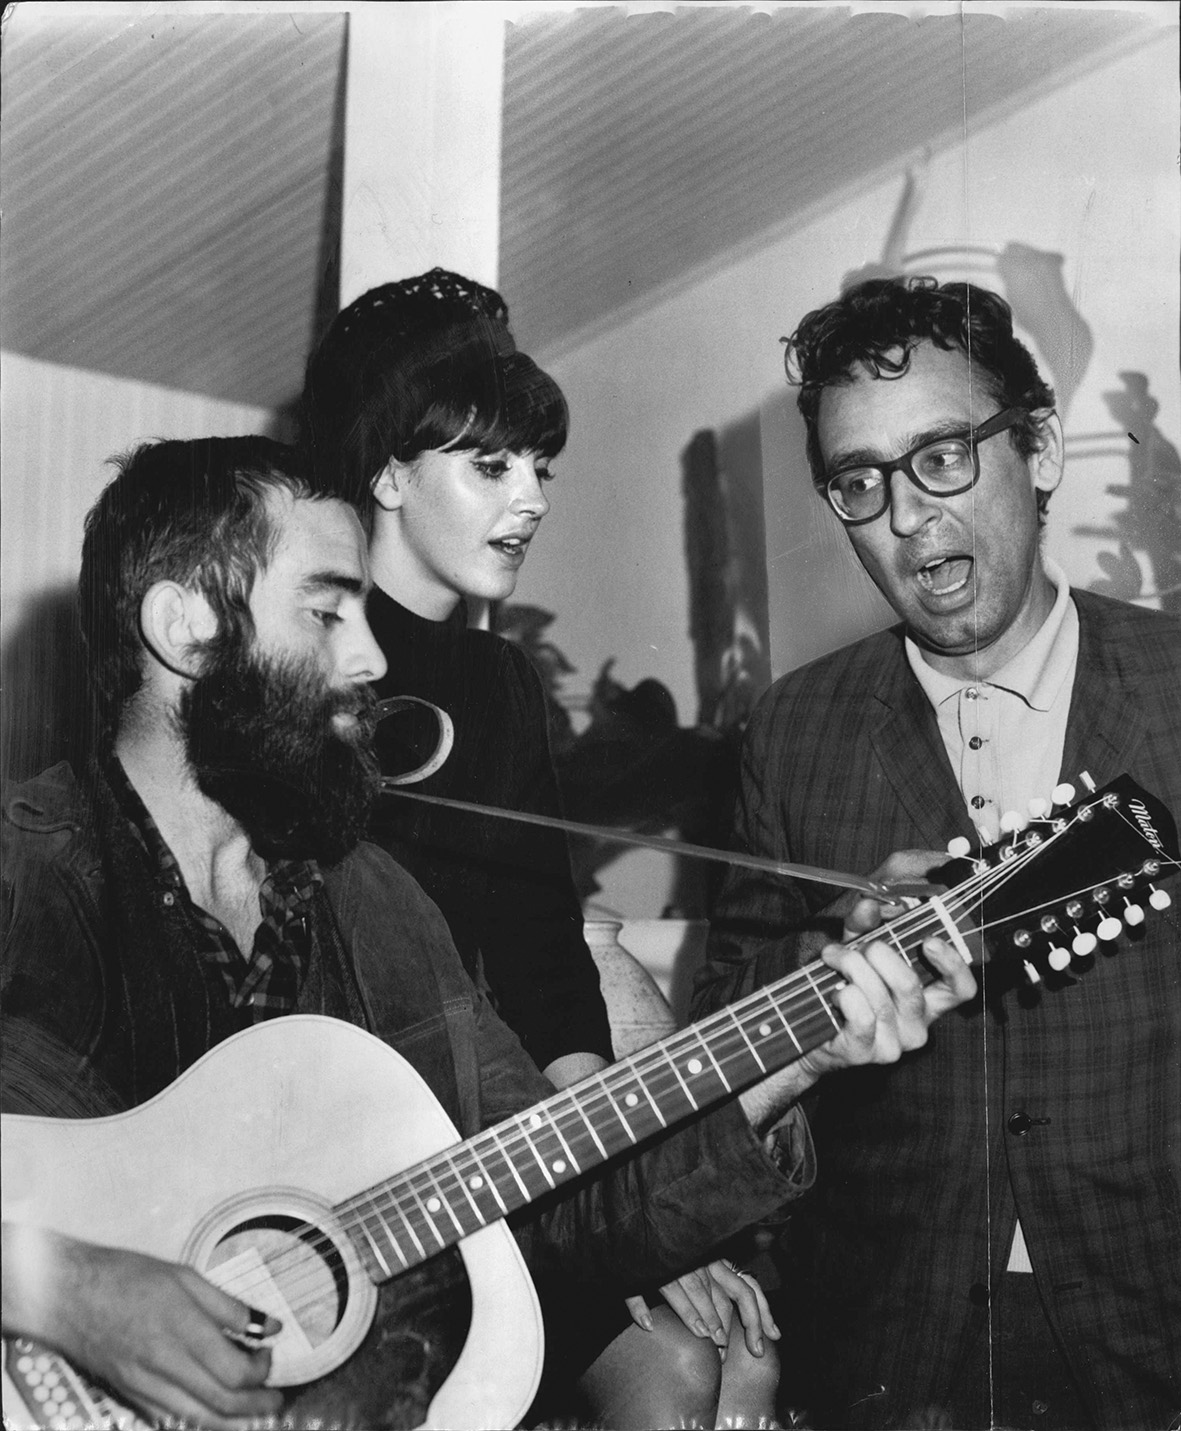 The American folk singer Dr. L. Gottlieb (right) joins Australian folk singers Frank Povah and Tina Date in an impromptu concert after his arrival at Kingsford Smith Airport yesterday, from the United States. Dr. Gottlieb is in Australia for a series of c